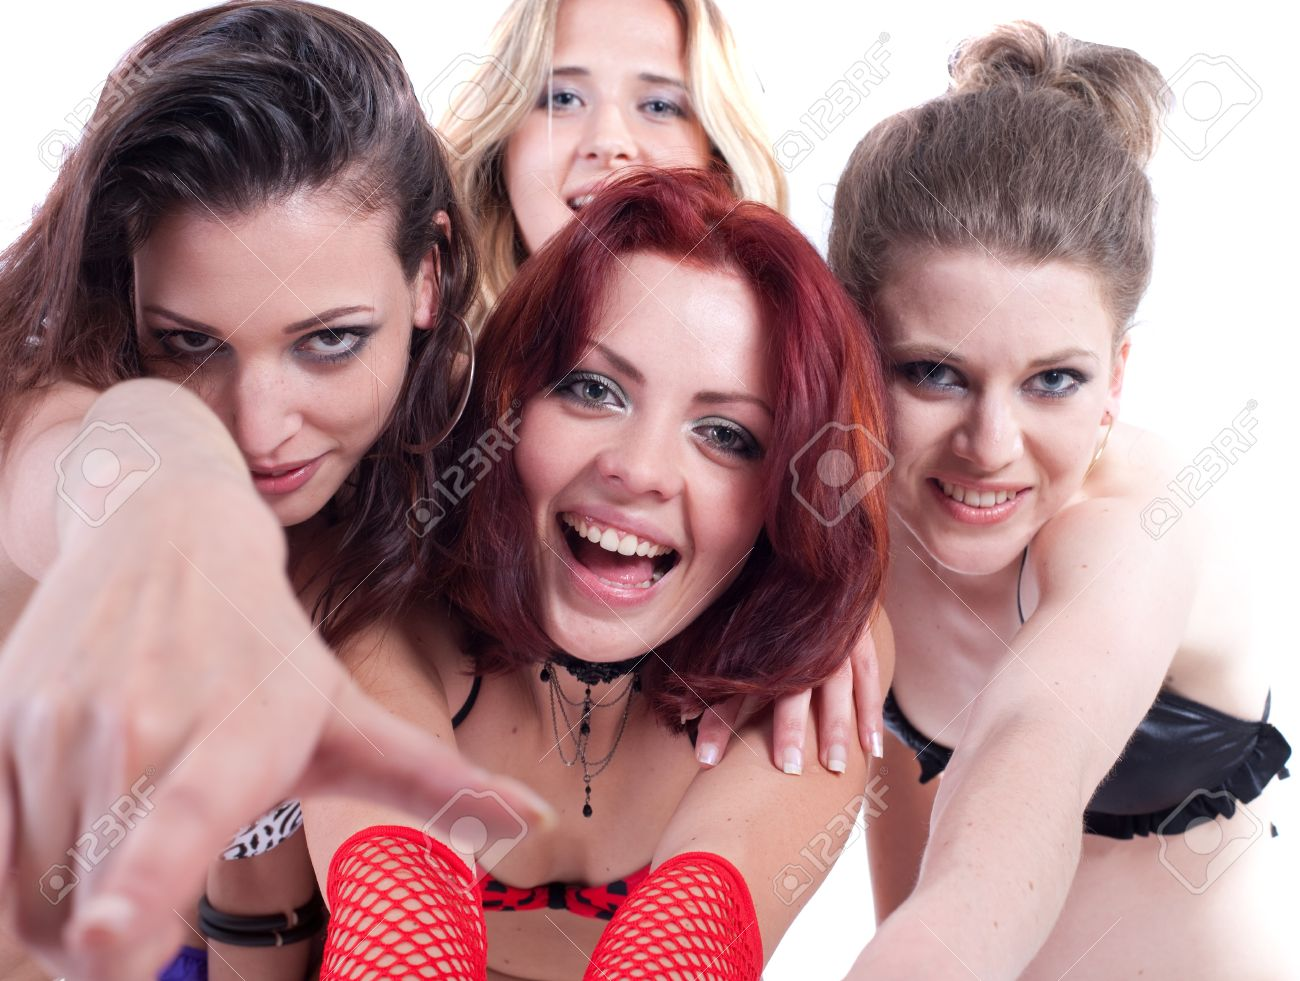 Stock Photo - Young group of four models with bikini. They are all partying  and having fun.